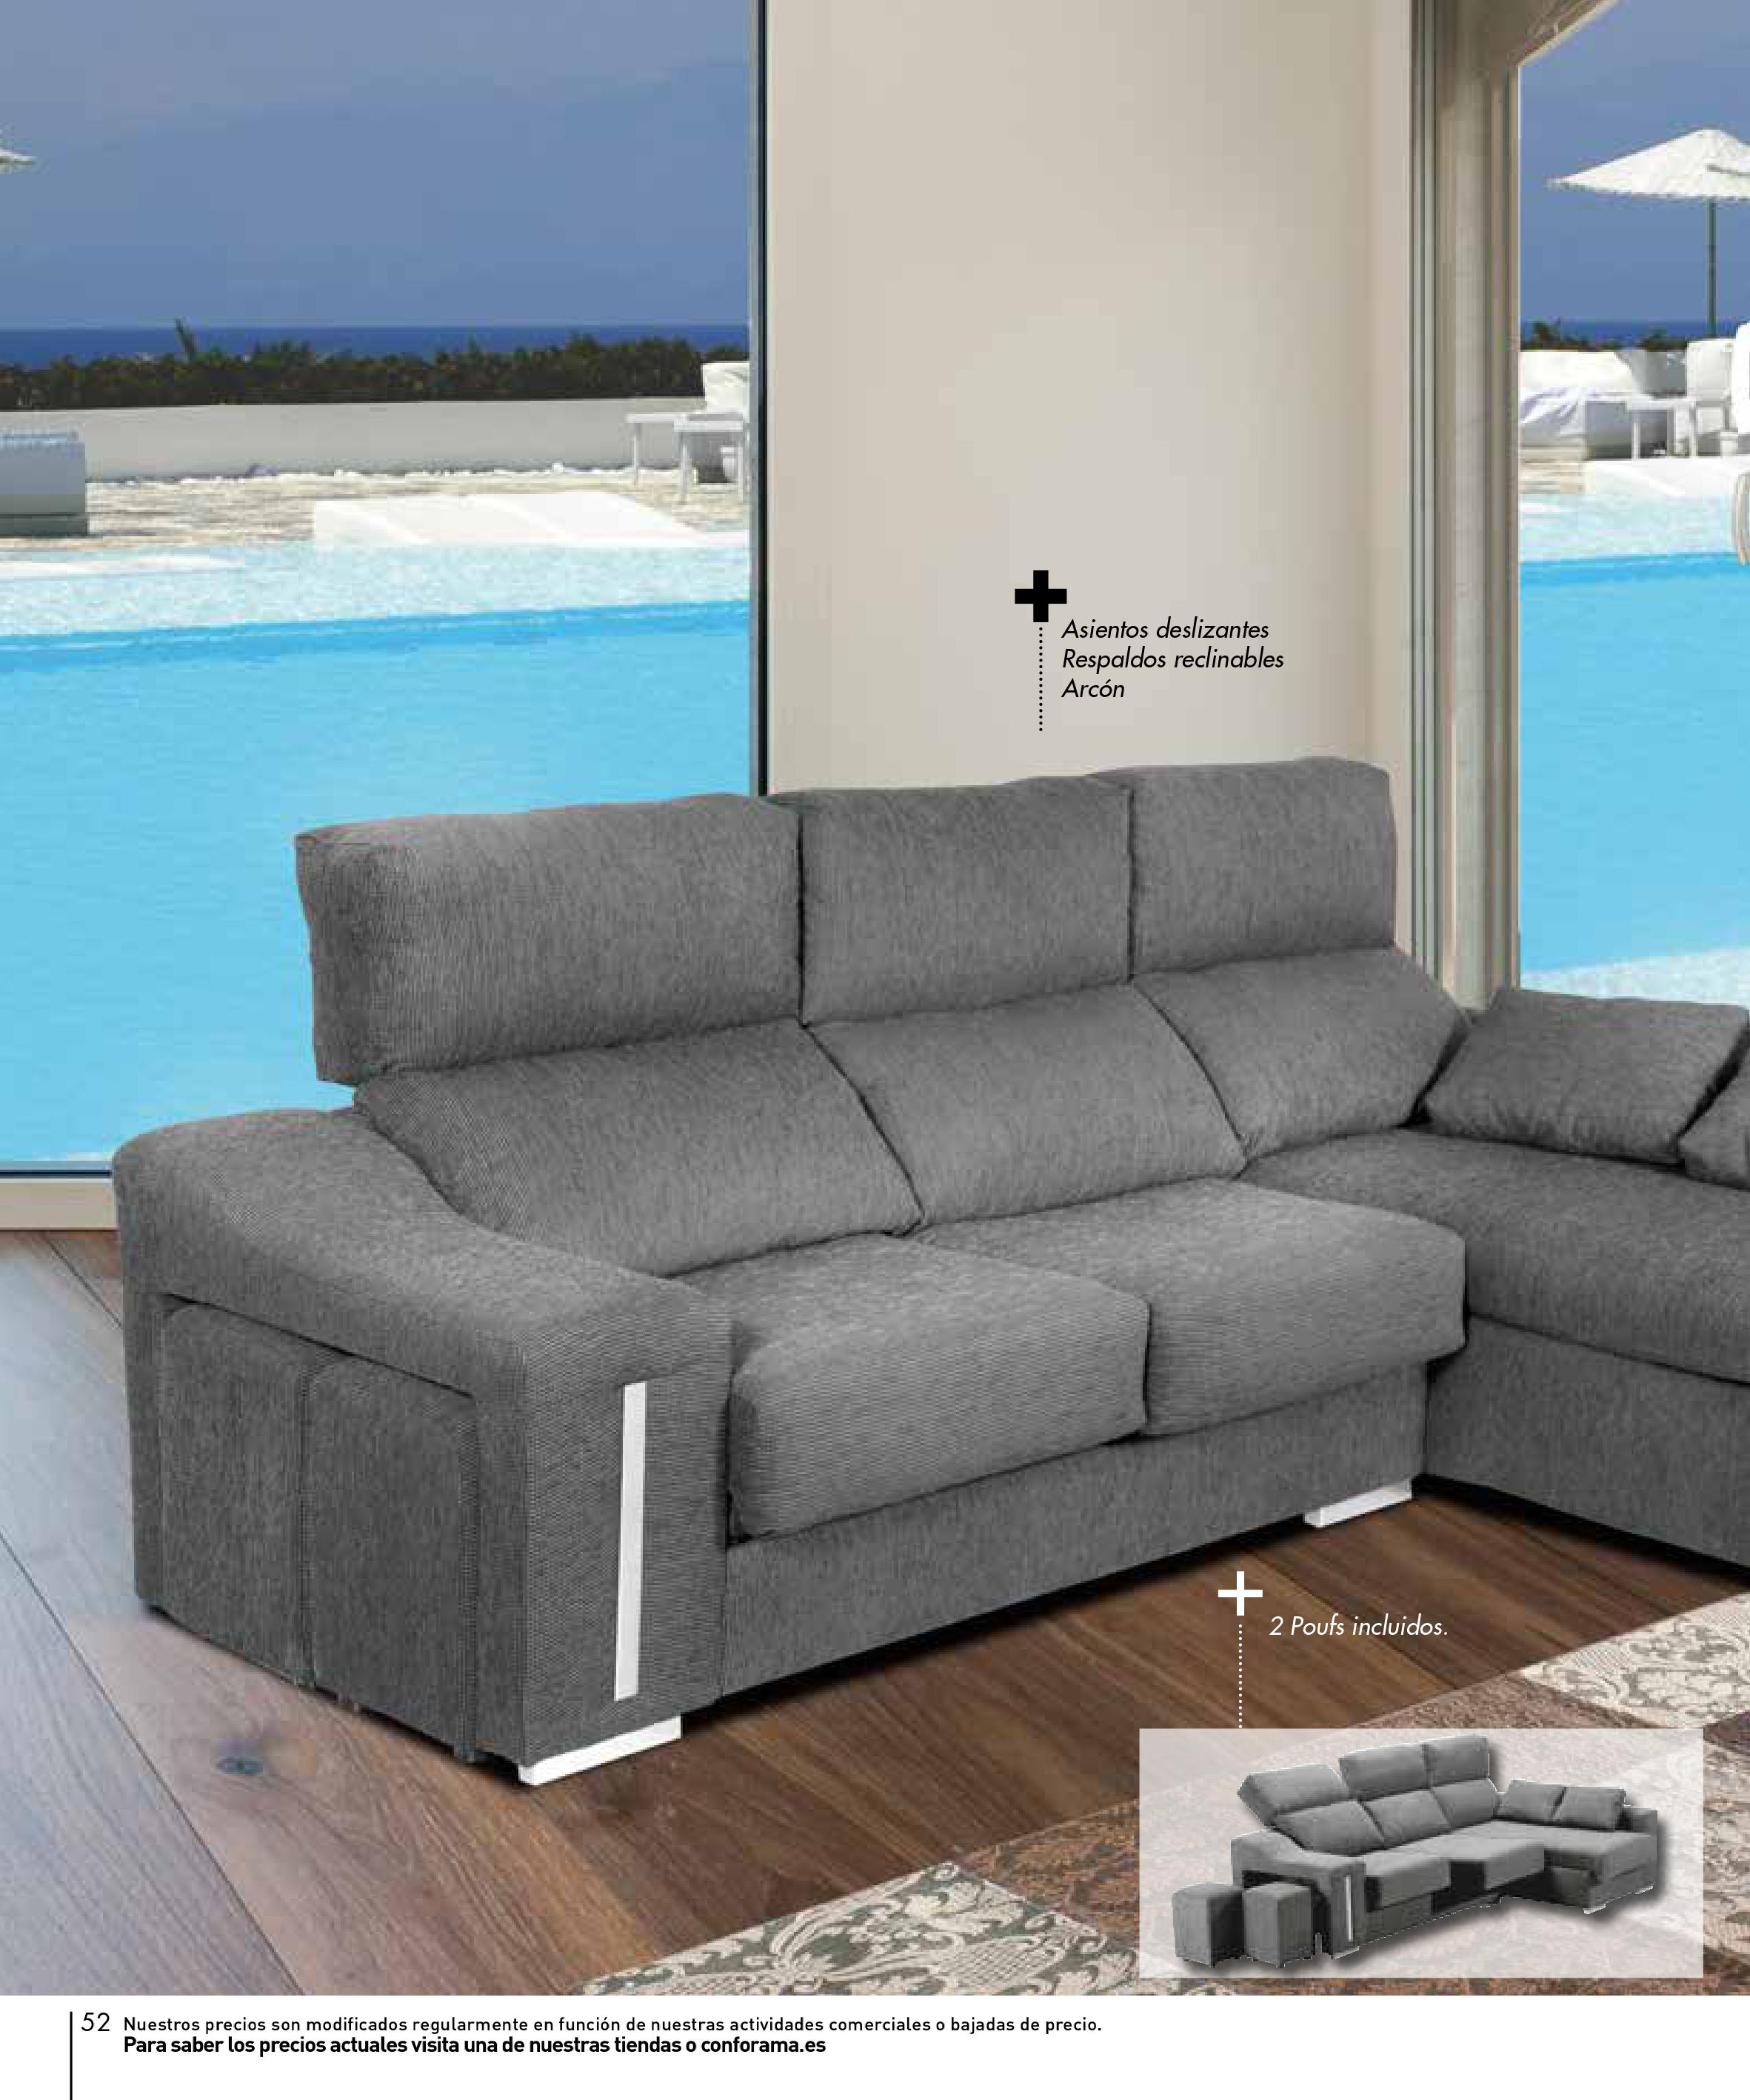 Sofas conforama 201552 for Sofas conforama catalogo